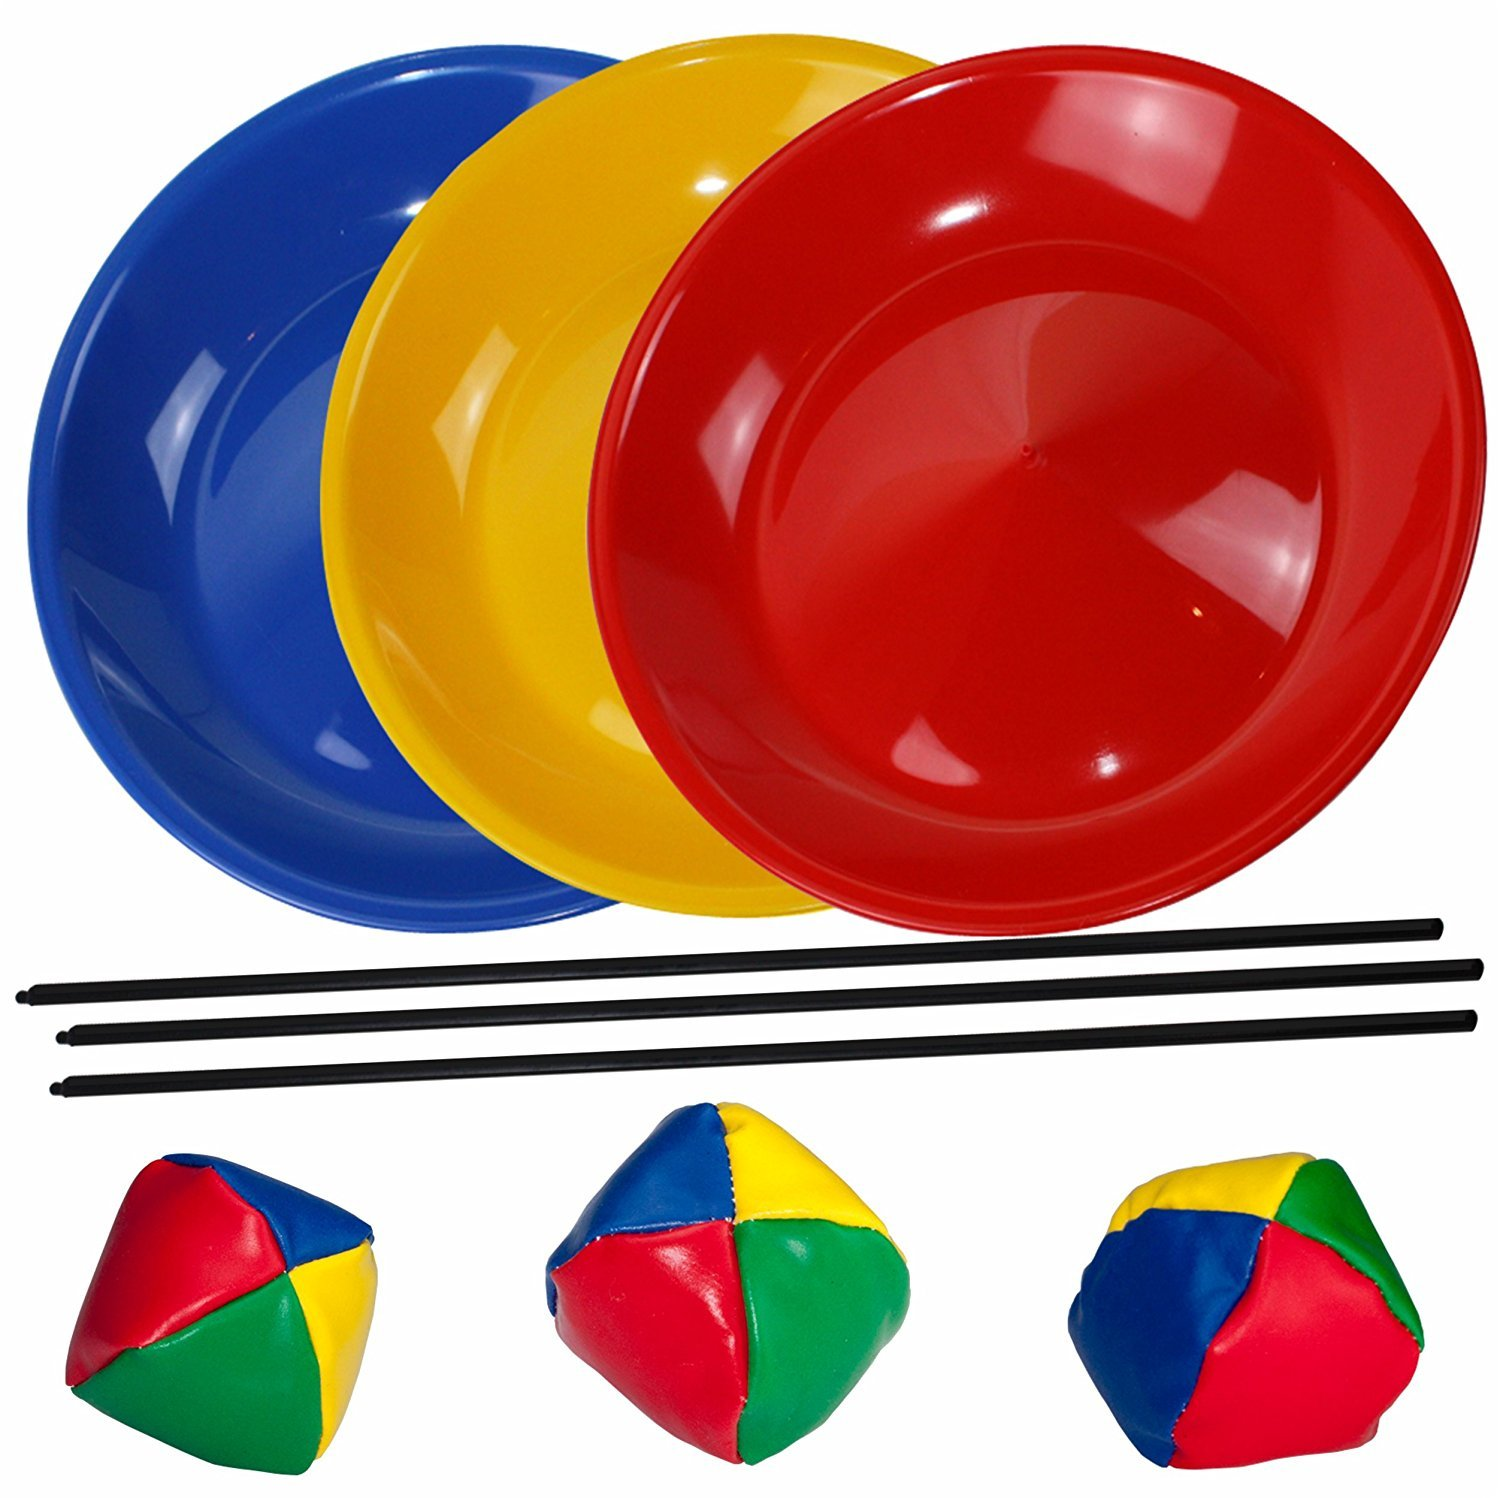 SchwabMarken Juggling Set, 3 Spinning / Juggling Plates with Plastic Sticks and Juggling Balls, Mixed Colours by SchwabMarken